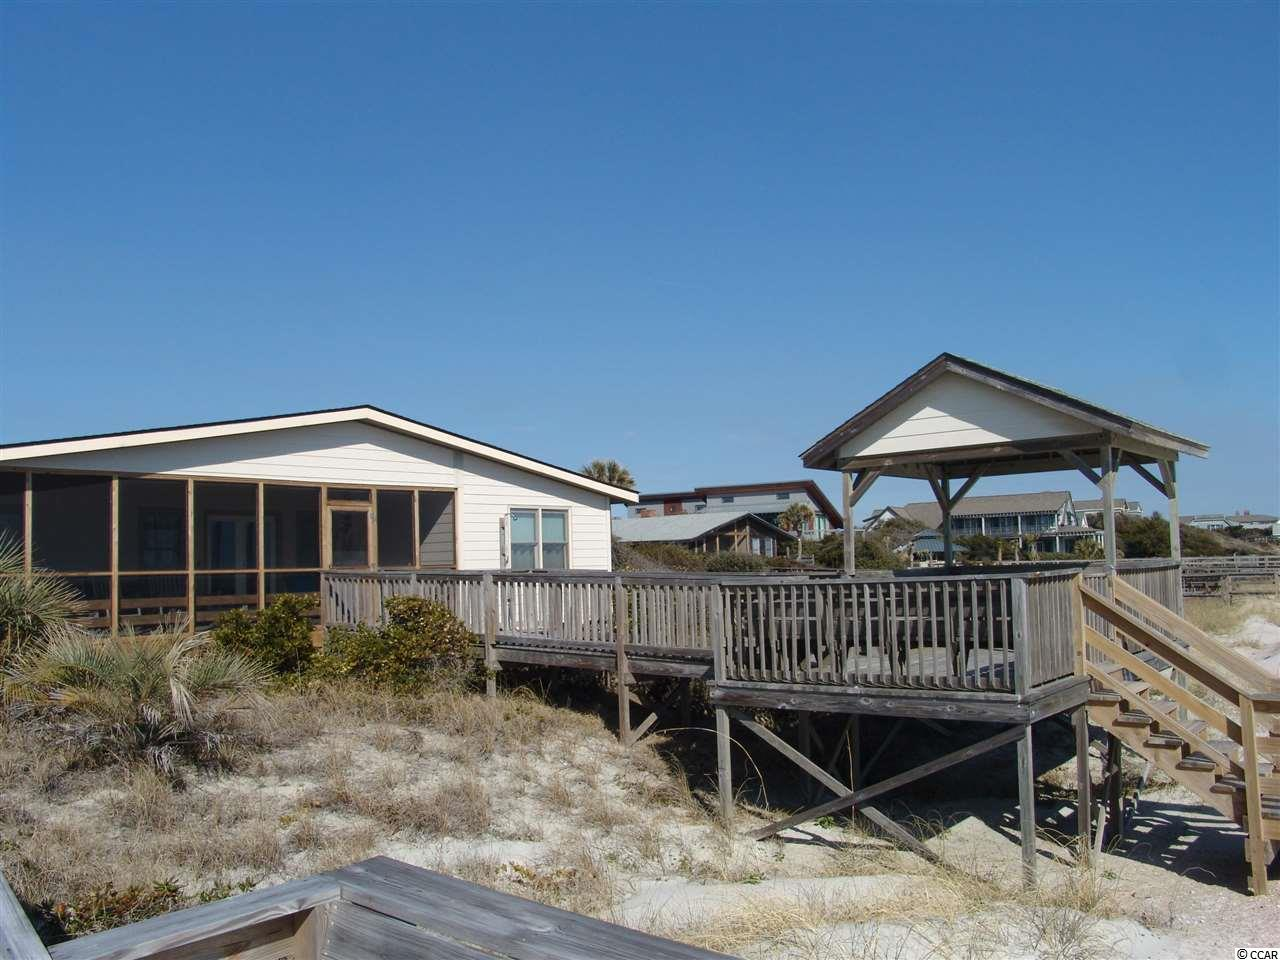 "Located just off the South Causeway, 452 Myrtle Avenue is right in the middle of Pawleys Island.  A great location situated Ocean Front with private drive access and ample parking behind house.  This beach home is a perfect, ideal beach property with five bedrooms and three full baths. The exceptionally large family room provides spacious living for the family and guest to watch television while others have ample room to particiapte in other activities. The kitchen is a nice size with bar seating that is adjacent to large dining area and kitchen table that will seat numerous family members and friends. Central heat and air, ceilling fans, dishwasher, microwave, disposal, washer and dryer, cable TV""s, DVD, sofabed, ocean and rear screened porches with deck on dunes and outside shower and grill all make this home an exceptional beach property and value.   Excellent rental history !!!  This home is in excellent condition and has always been well maintained by owners.  The Beach House features both front and rear screen porches and a private boardwalk and covered ""Look Out"" to sit and enjoy the sun rise, sun set and enjoy the ocean  and amenities of Ocean Front living.  Truely a home to build memories at the Beach!!!!"